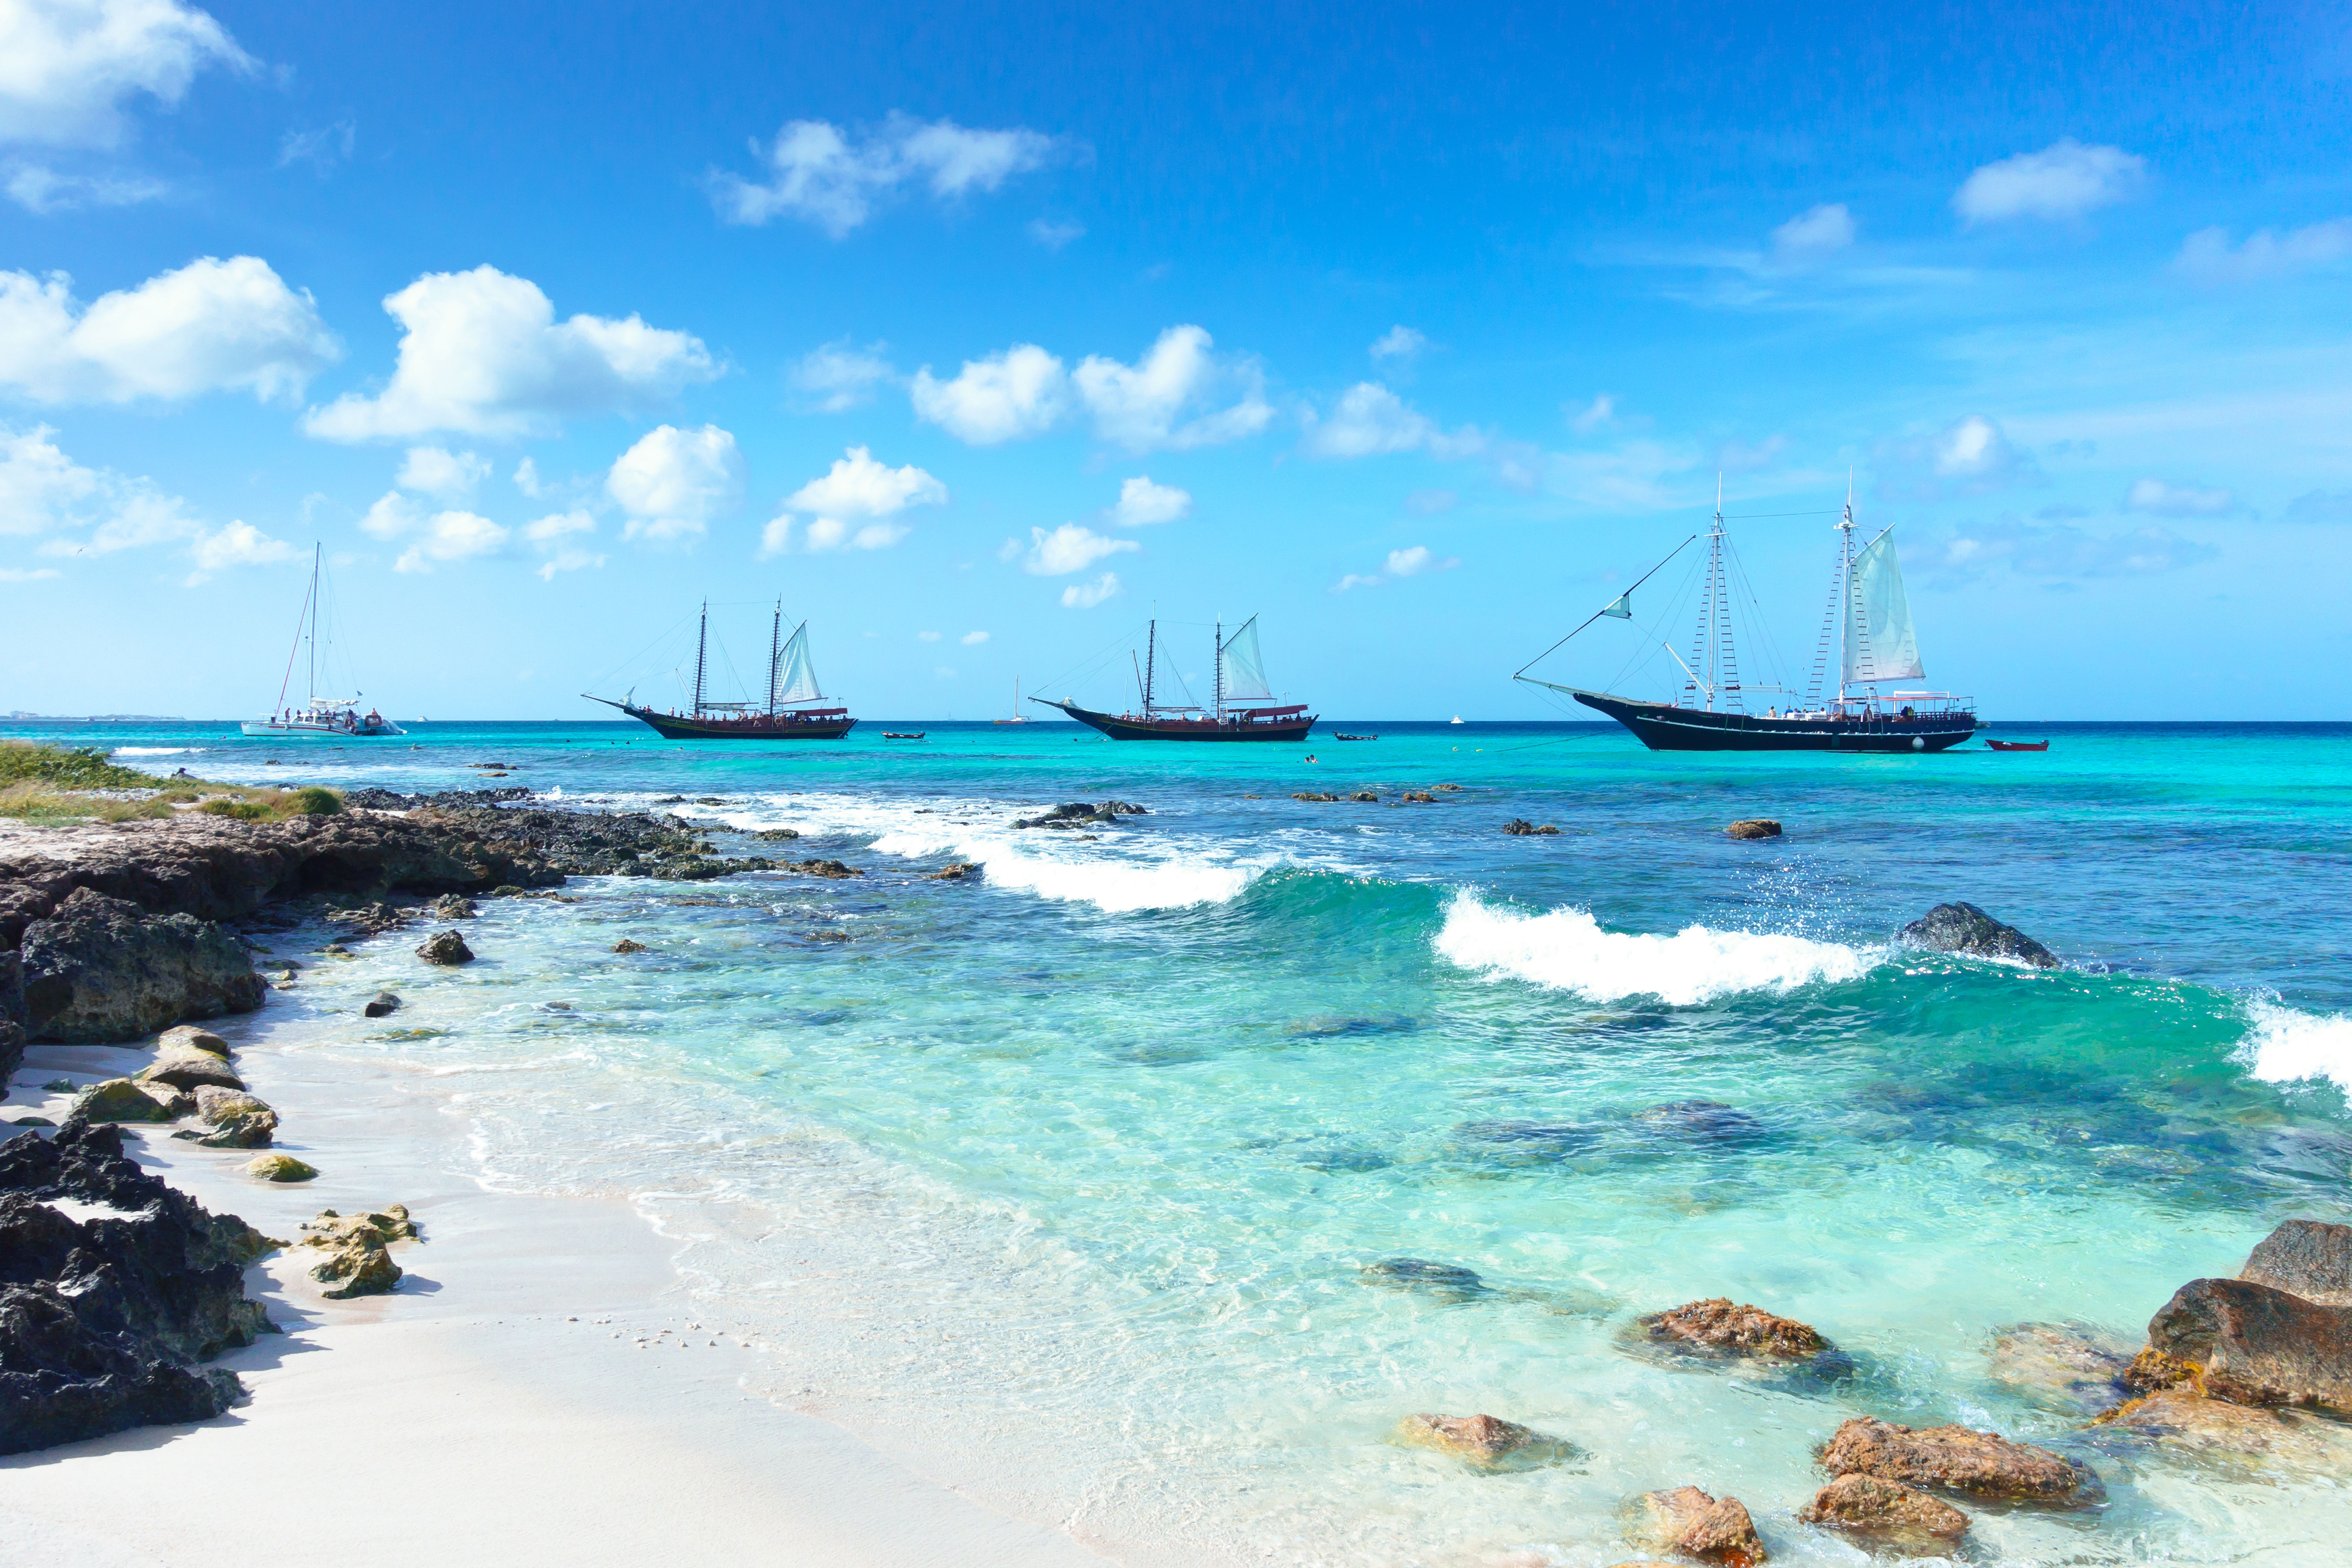 Sail boats next to tropical island in the Caribbean island of Aruba.